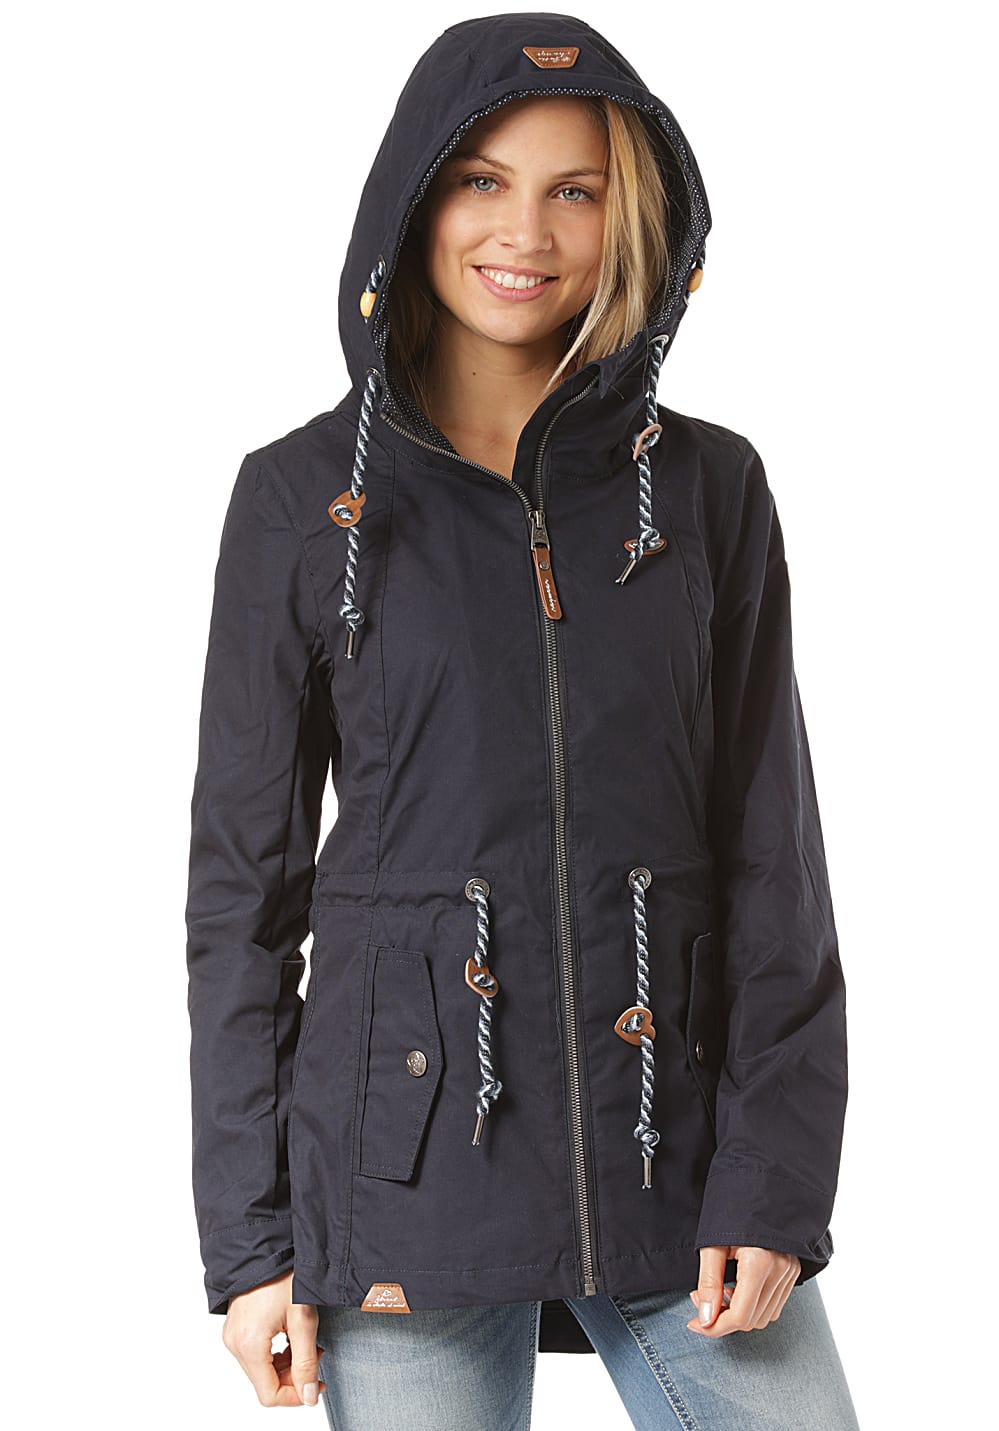 Jacken - ragwear Monadis Jacke für Damen Blau  - Onlineshop Planet Sports